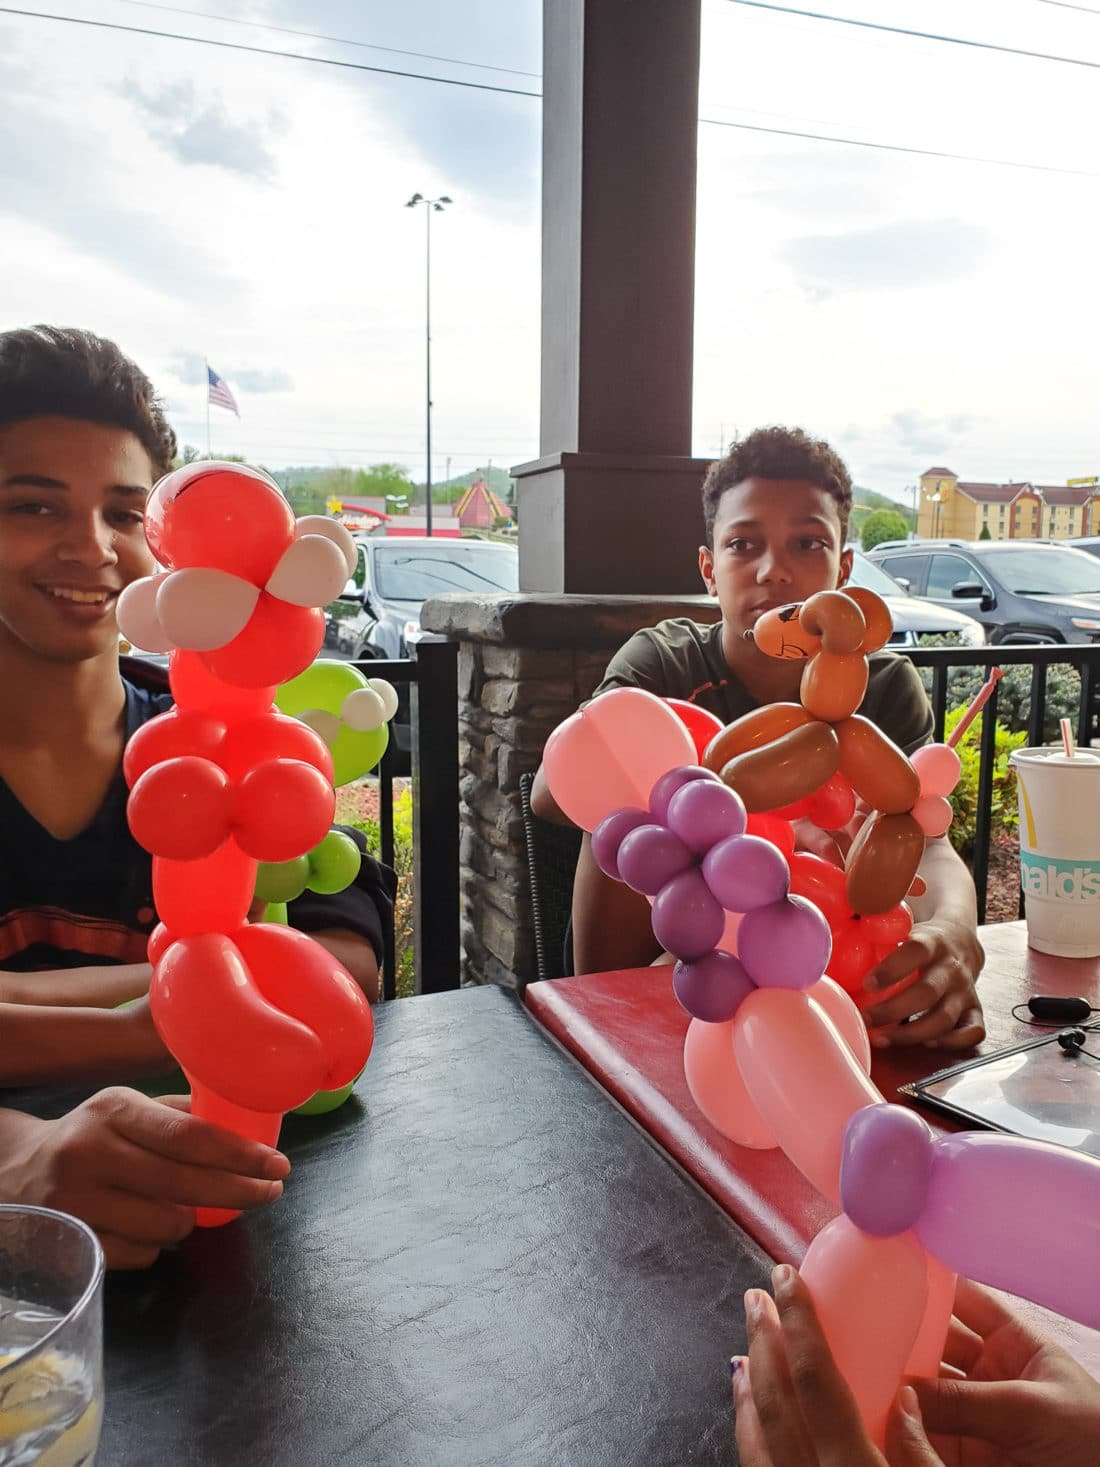 Big Daddy's Pizzeria Balloon Animals Teens. This is not your average pizza pie!At the heart of Big Daddy's is a 550 degree, wood-fired flame inside of a one-of-a-kind brick oven. Read all about why this freshly made pizza is my families go to pizza joint in Pigeon Forge, TN.